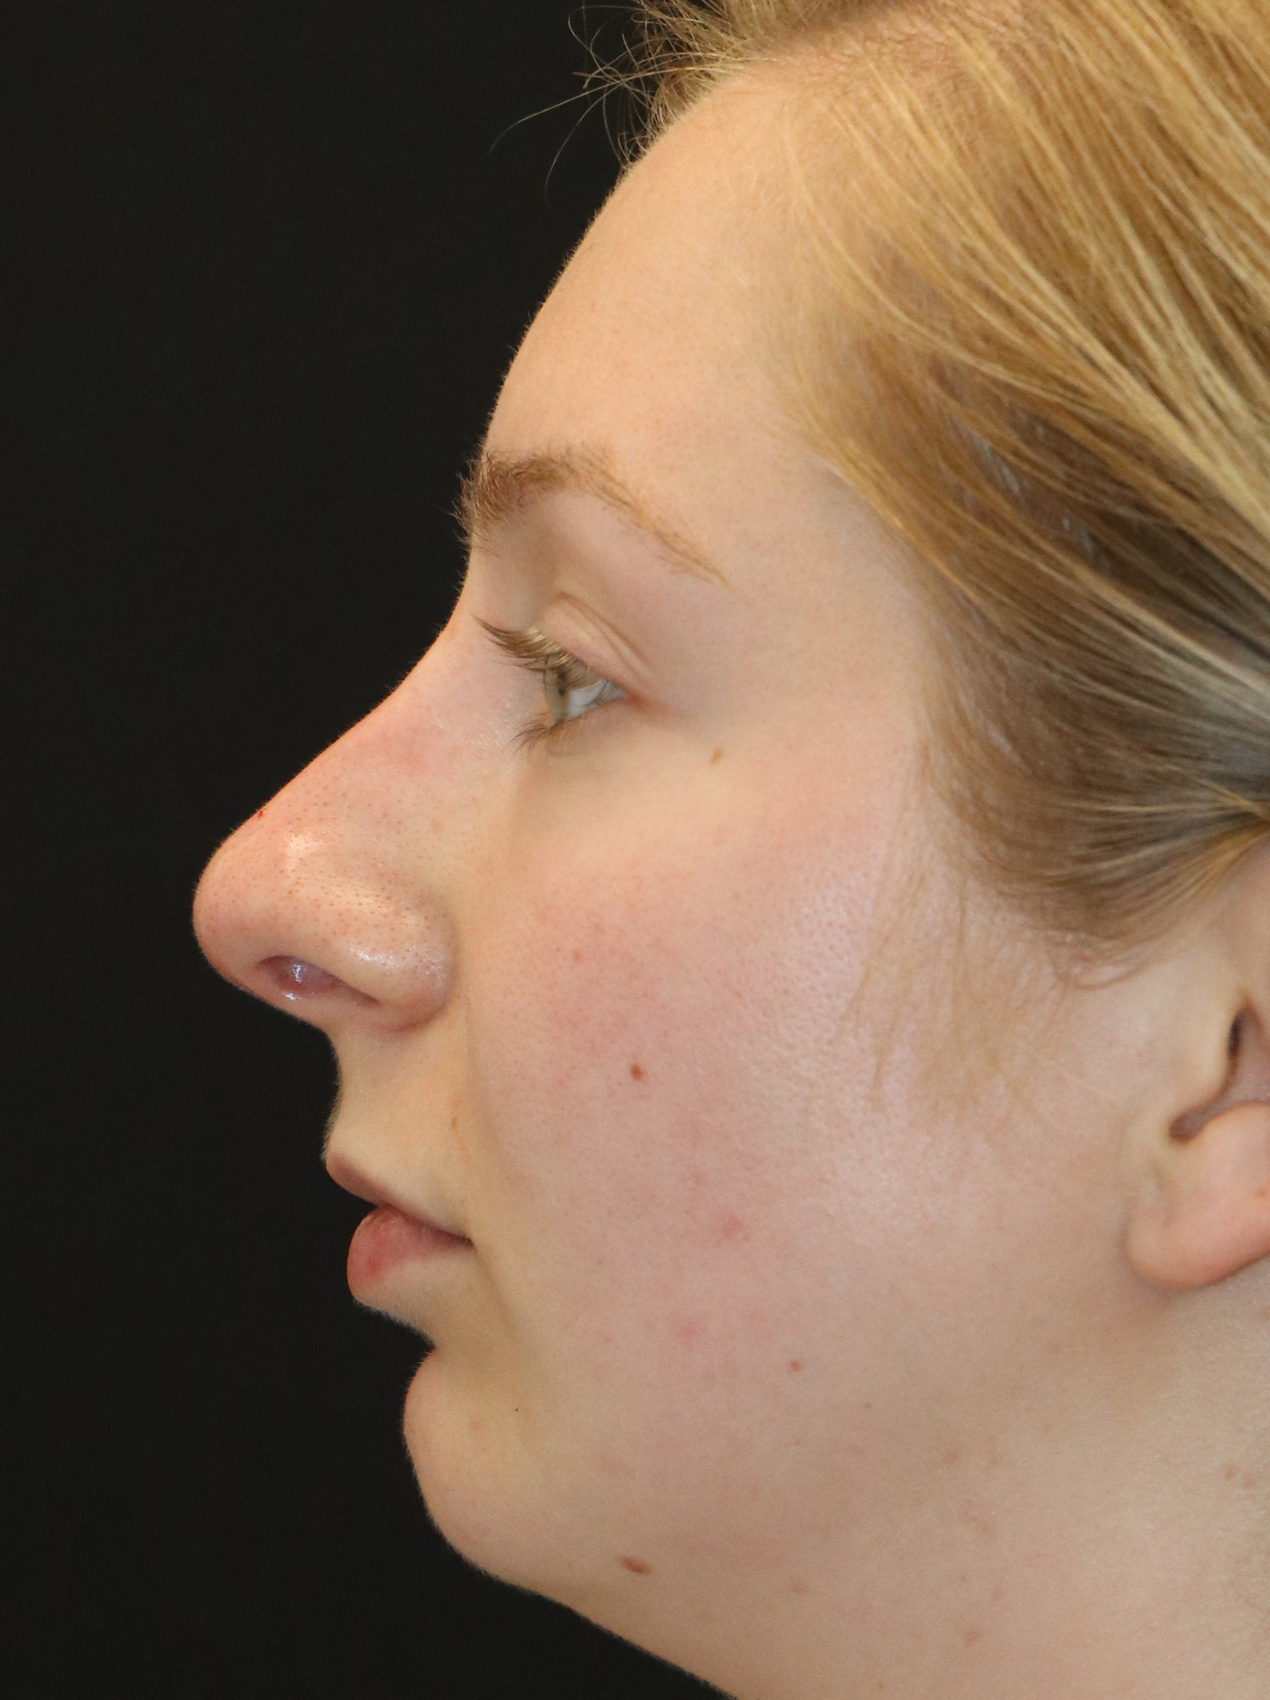 SEATTLE, WA - Rhinoplasty Expert this patient had a filler nose job. Photo taken just after injections